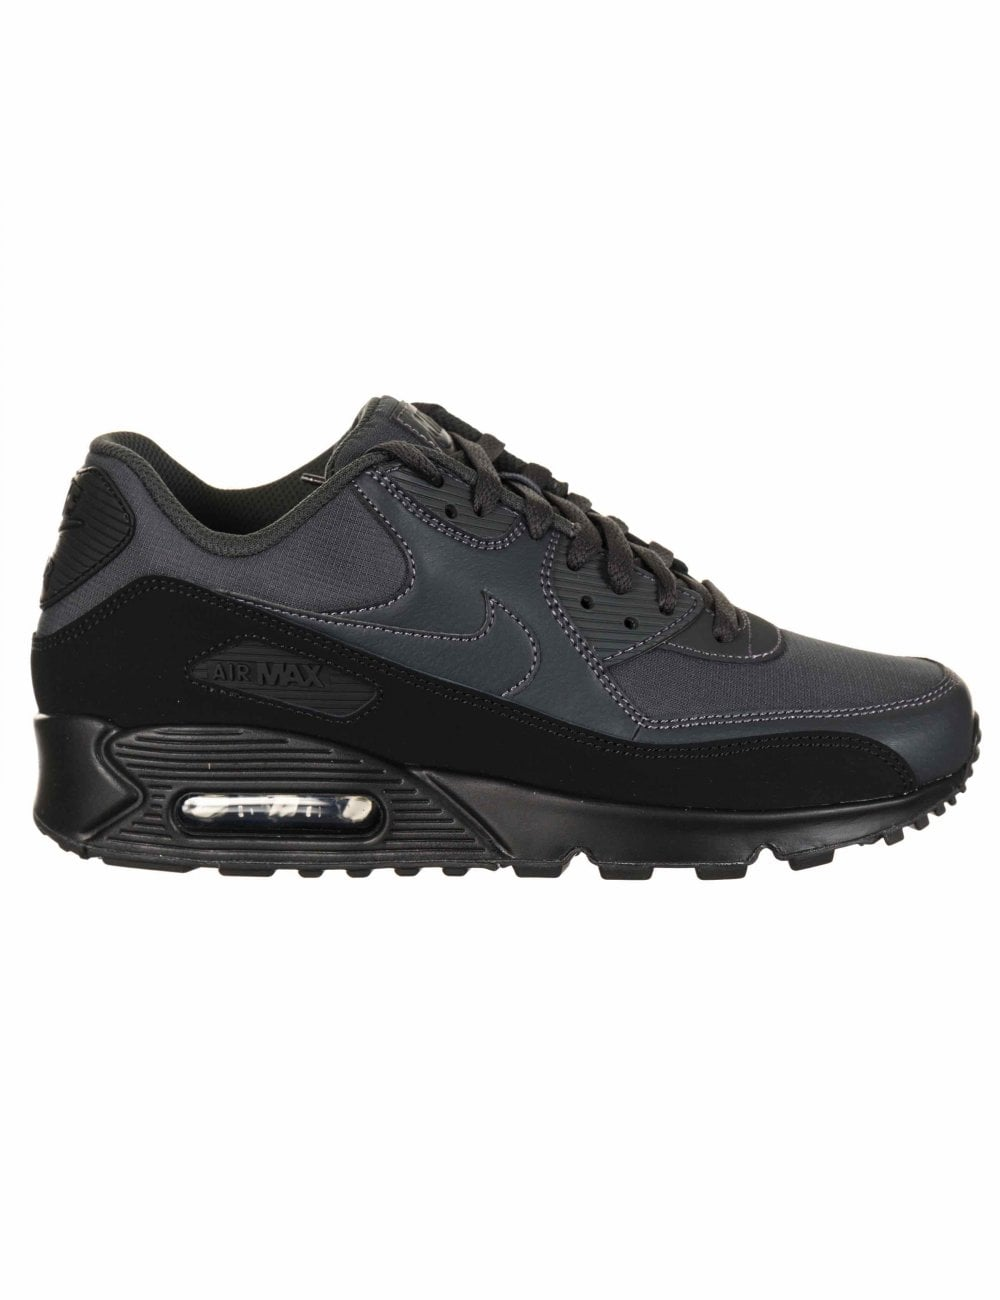 new arrivals d8a17 8cb02 Air Max 90 Essential Trainers - Black Anthracite